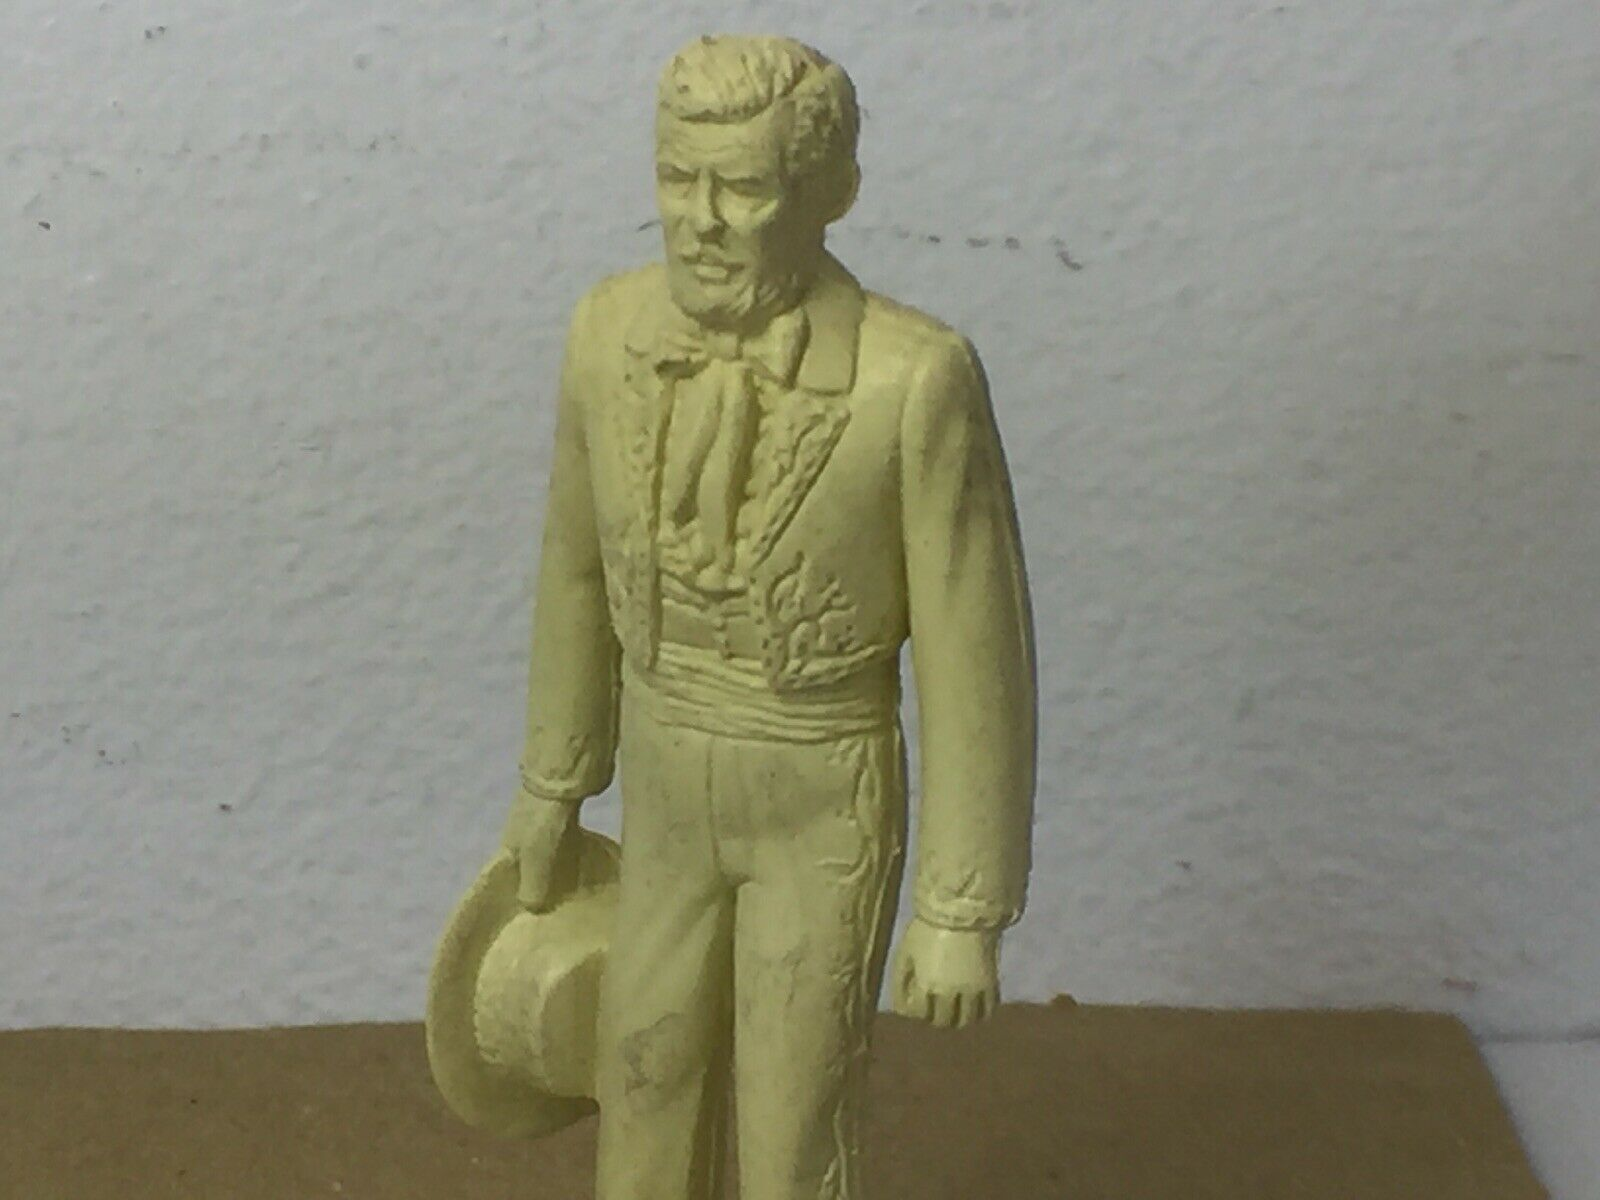 Marx Original Authentic Zorro Figure Don Alejandro Cream Cream 54mm Marked Figs Playse